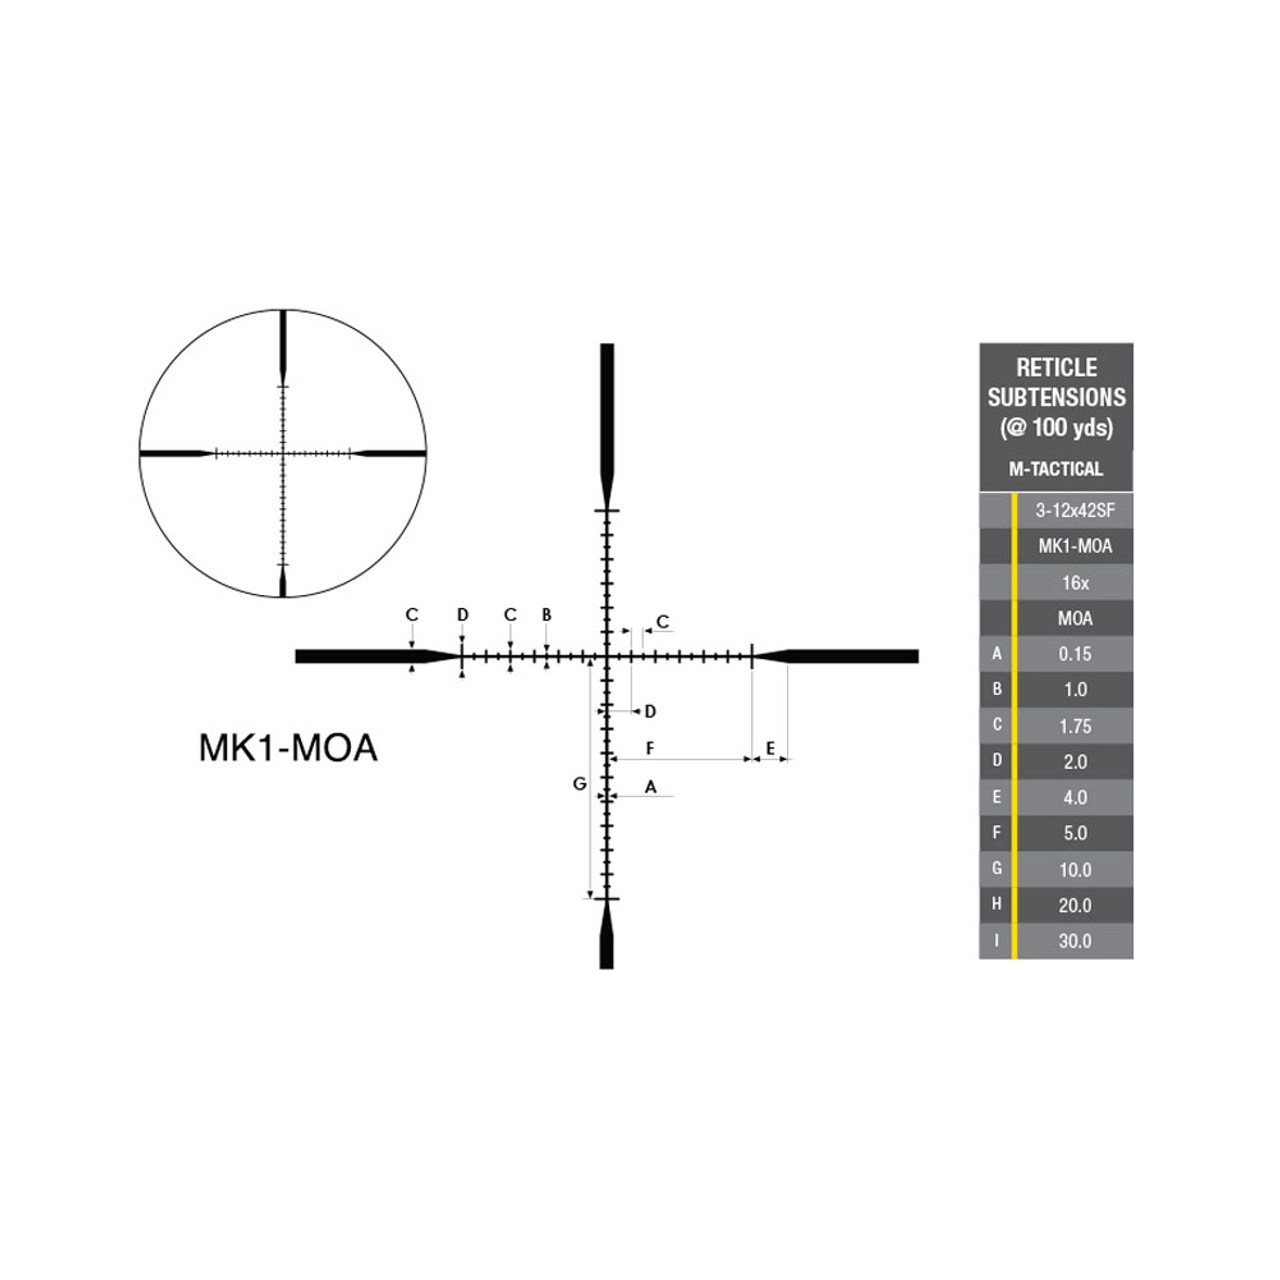 medium resolution of ar 15 schematic diagram scientific scope diagram m4 rifle parts diagram bolt